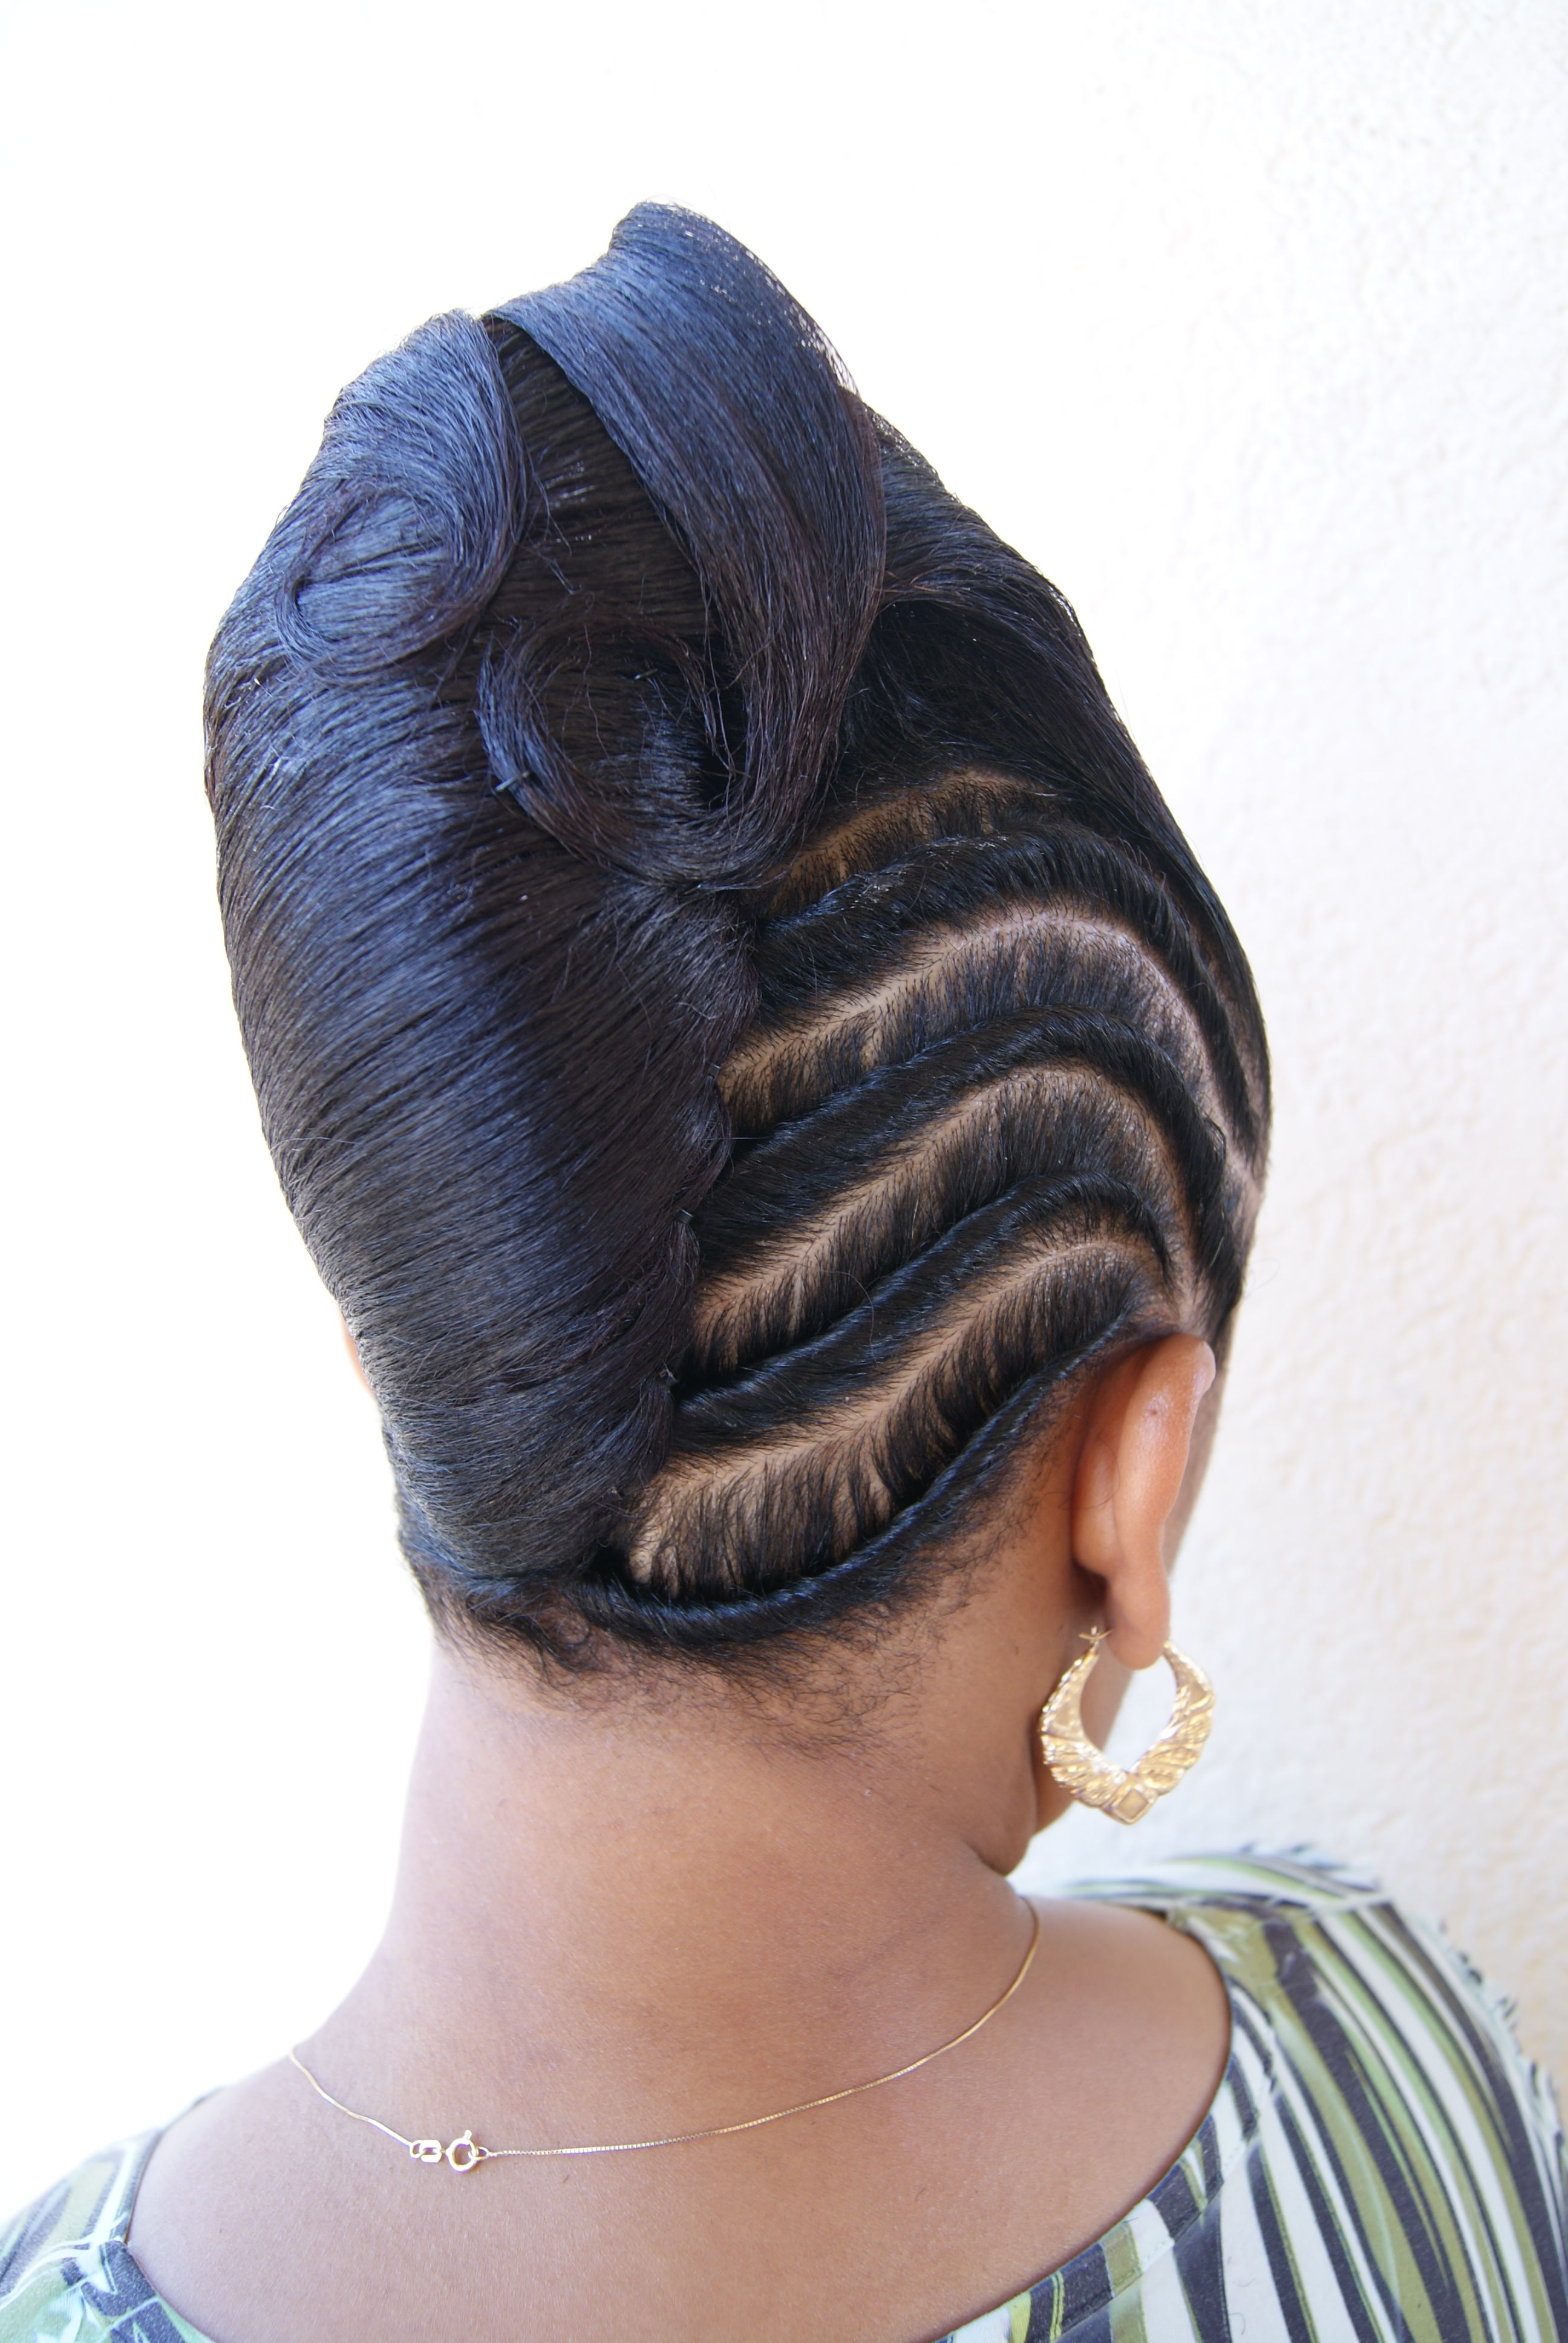 Pin By Mzpretty Pretty On Protective Styles African American Updo Hairstyles Black Hair Updo Hairstyles Black Women Updo Hairstyles